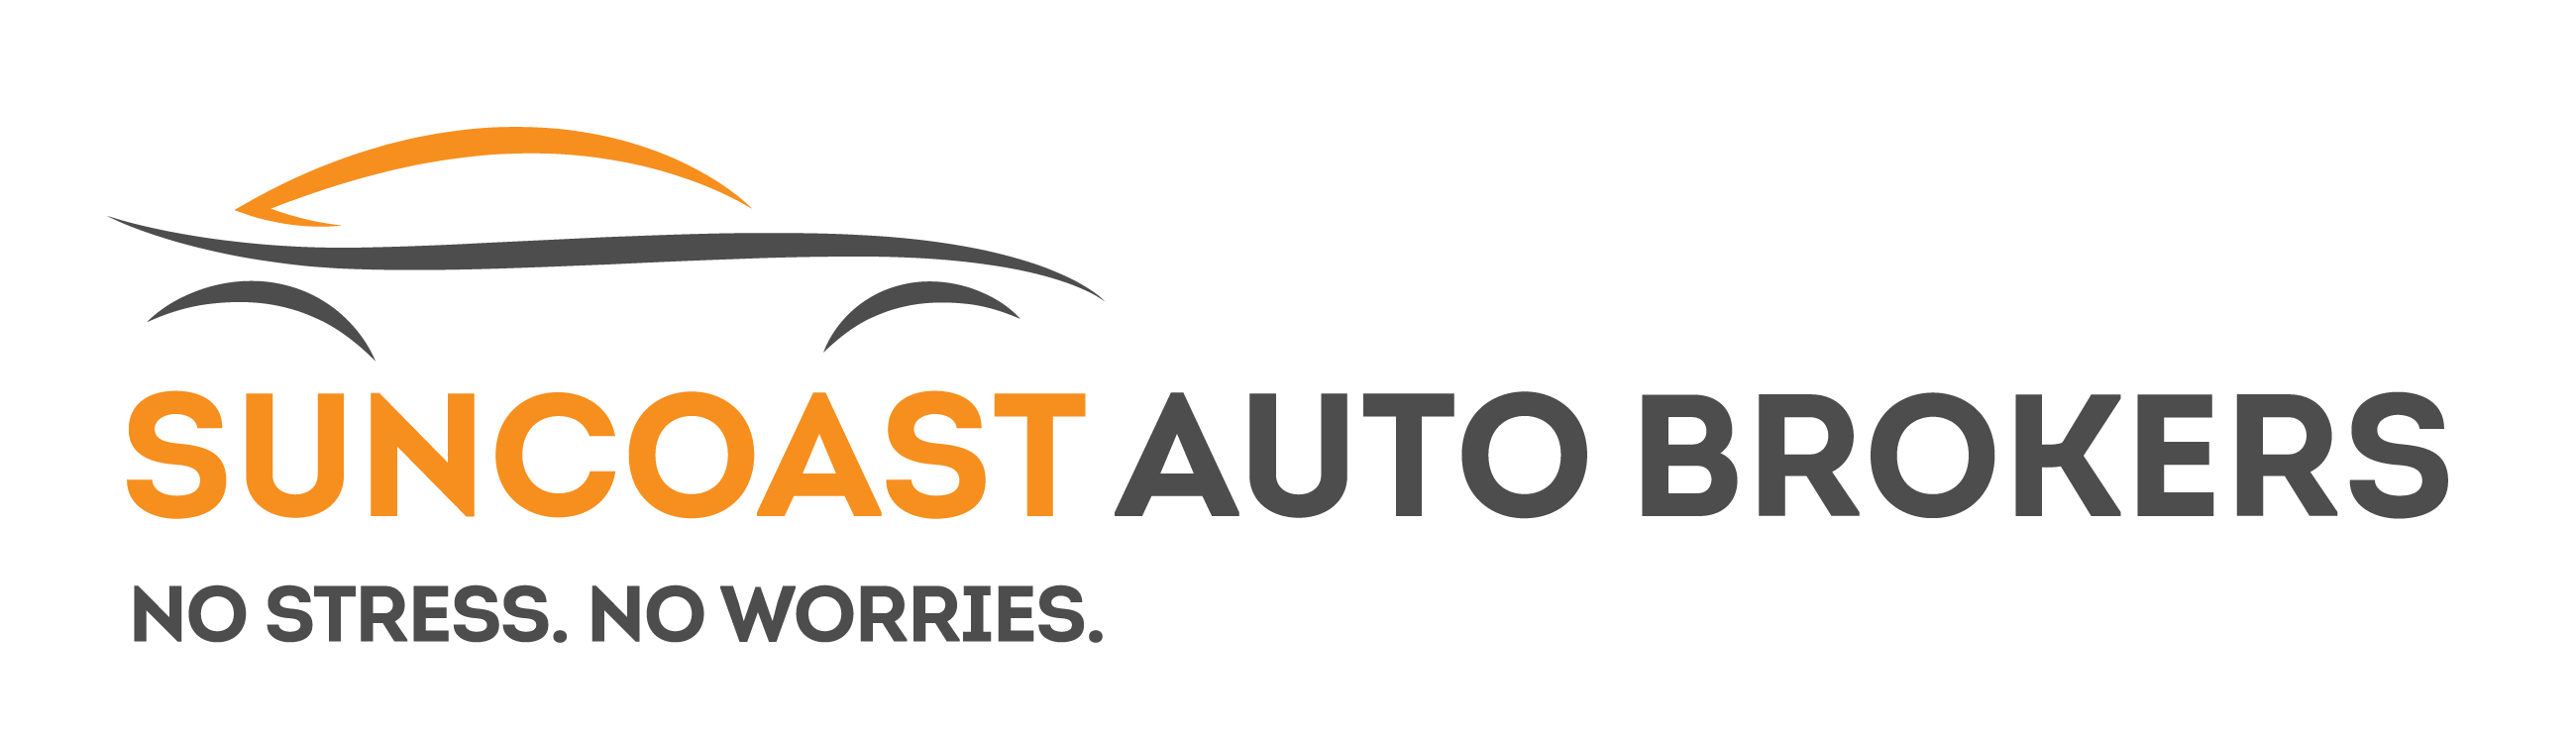 SunCoast Auto Brokers | Best Cars at The Best Price